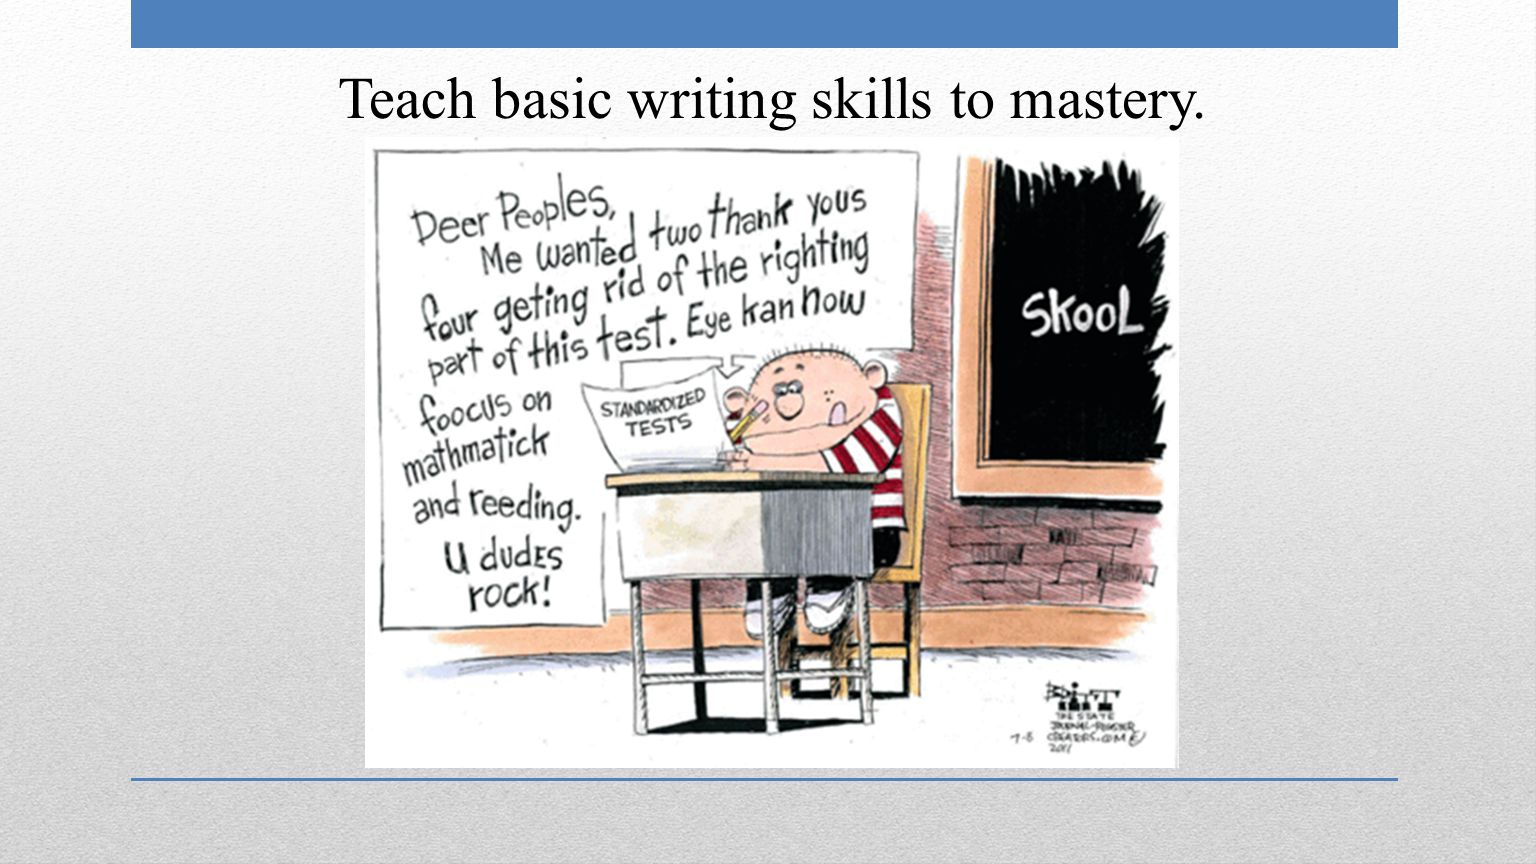 Teach basic writing skills to mastery.